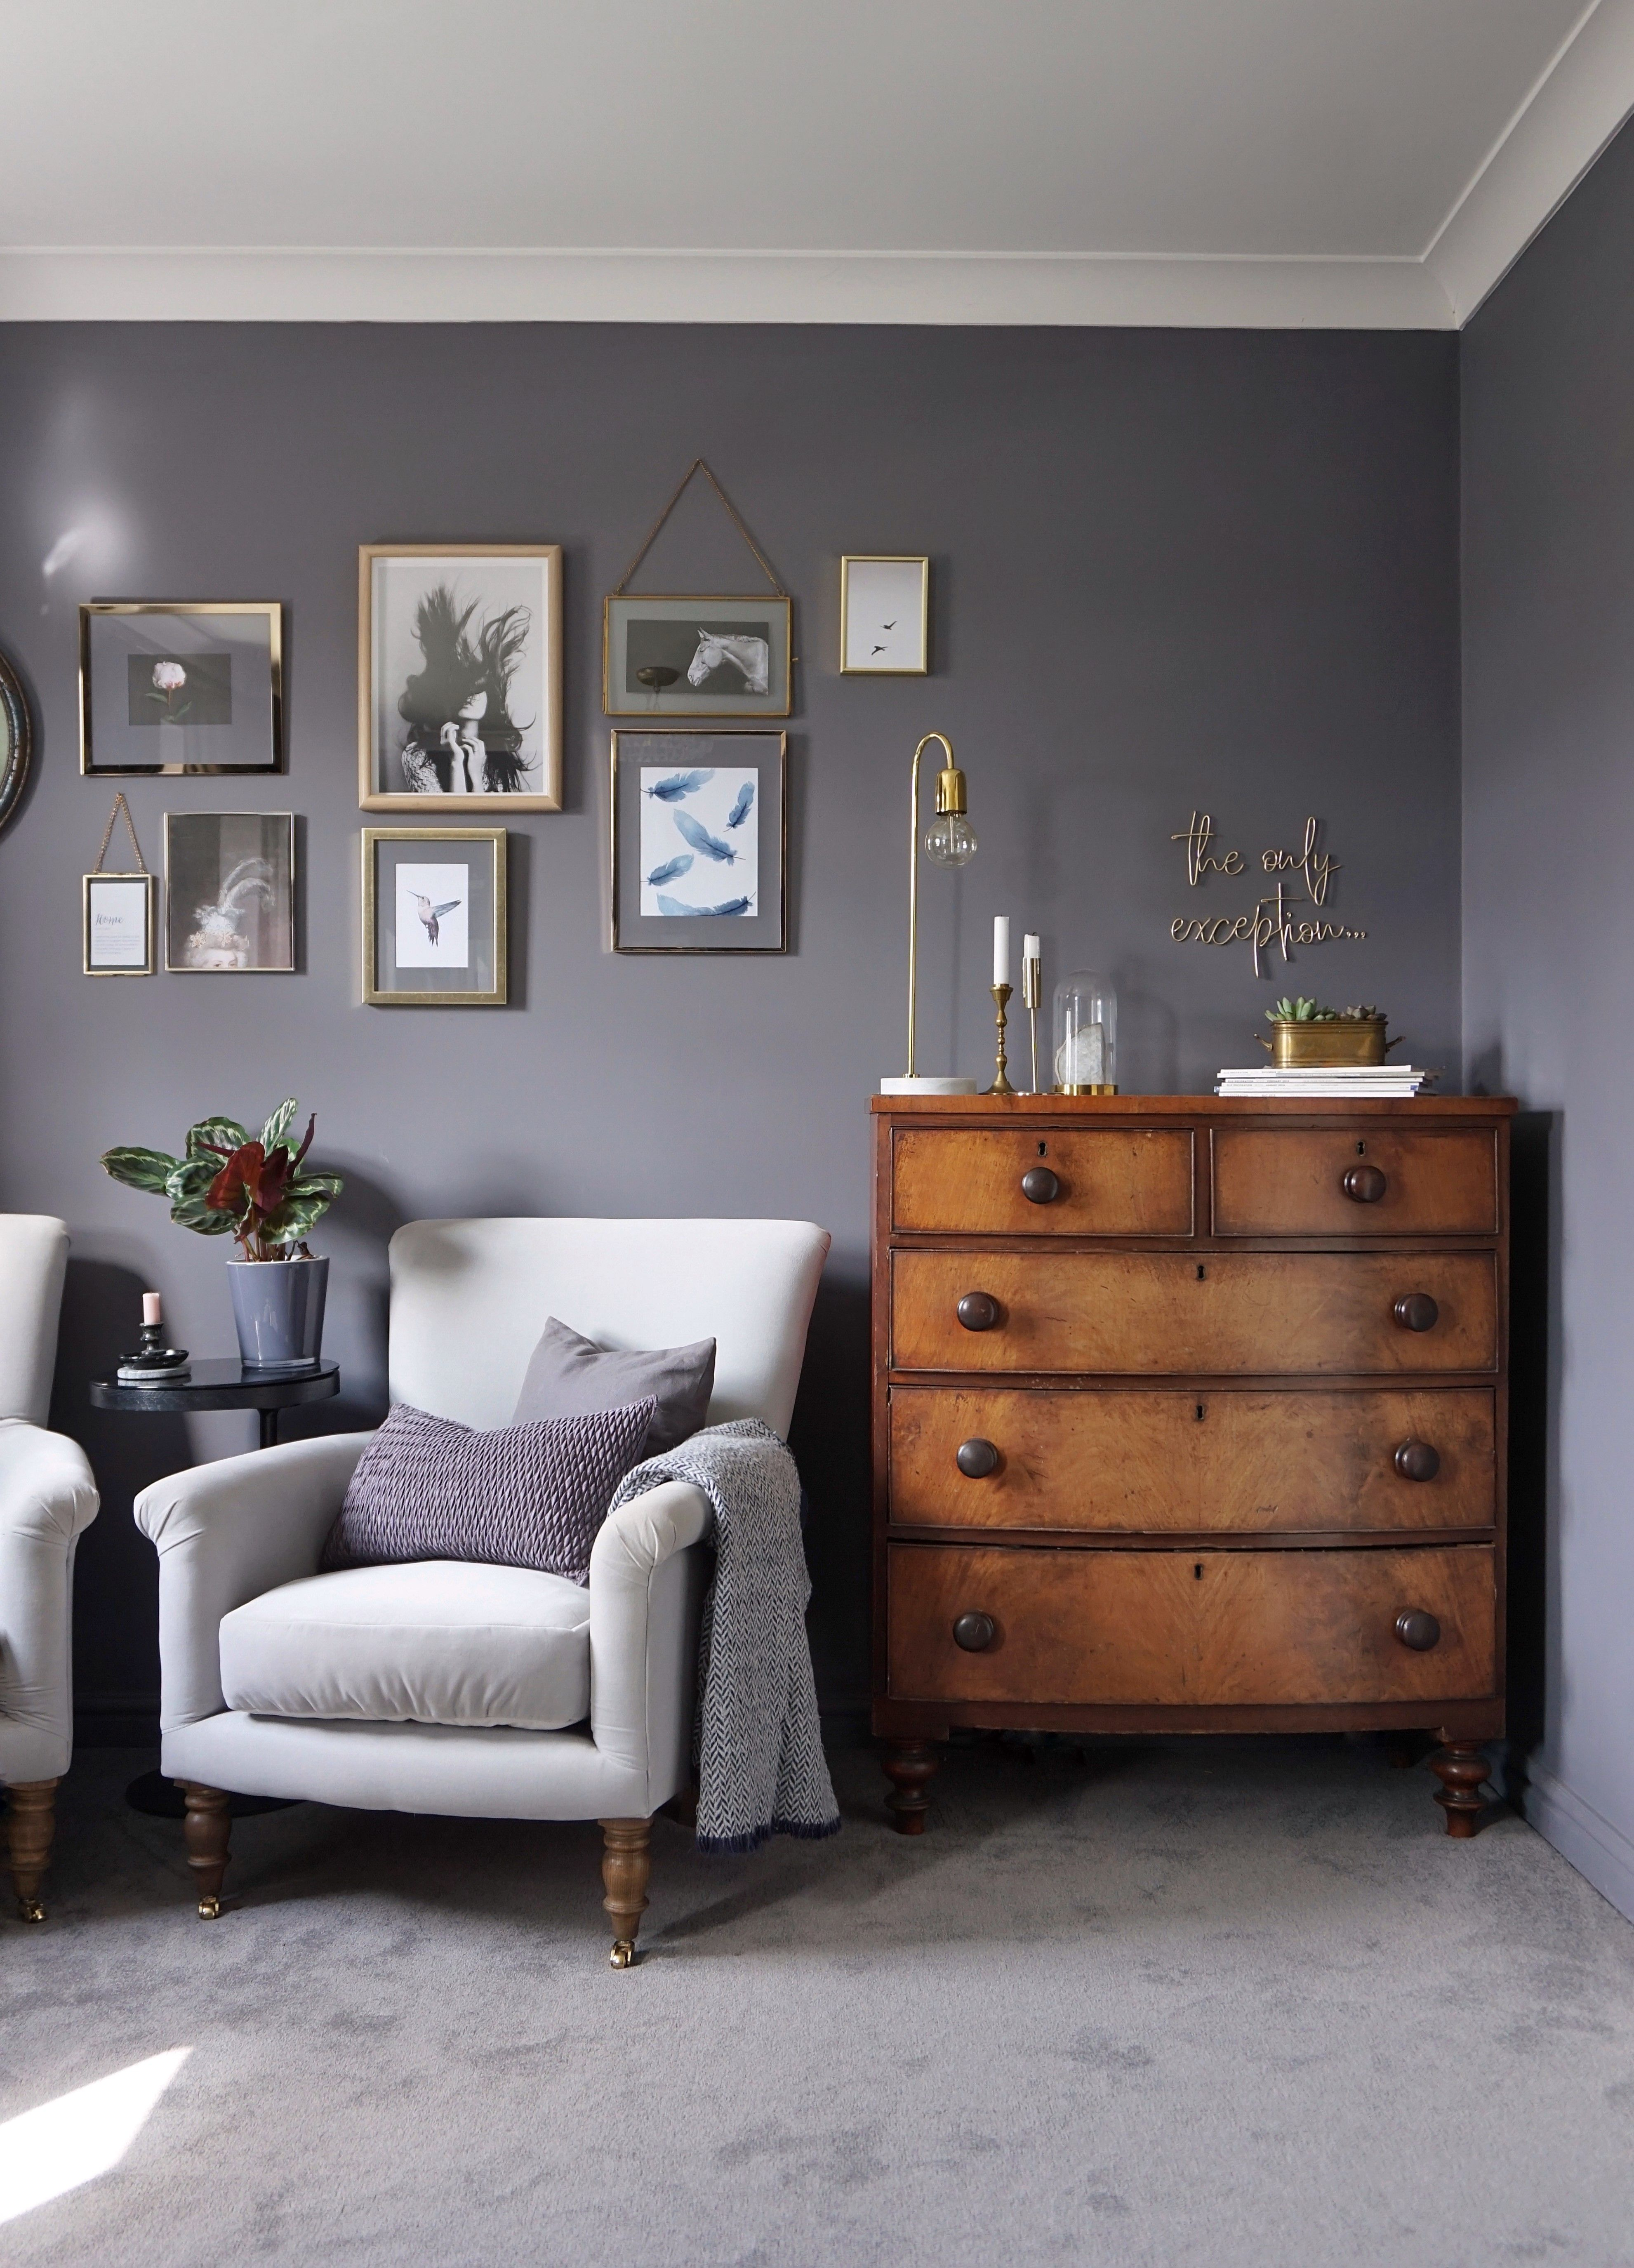 Dark living room vintage chest of drawers sofa.com armchair